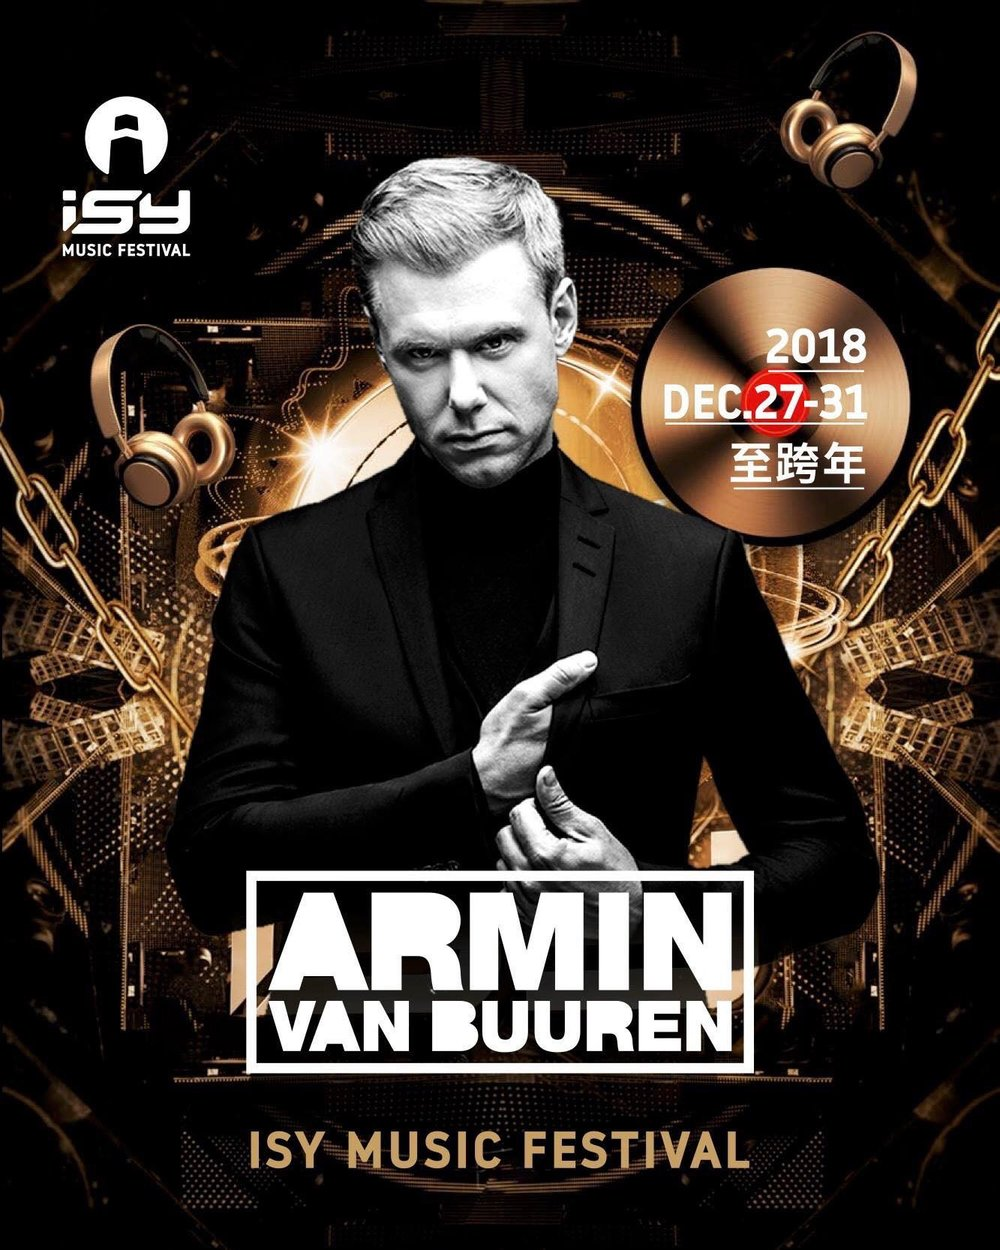 Armin Van Buuren - Dutch DJ, record producer and remixer. He has been ranked the number one DJ by DJ Mag a record of five times, four years in a row. 2018 ISY MUSIC FESTIVAL final show DJ.